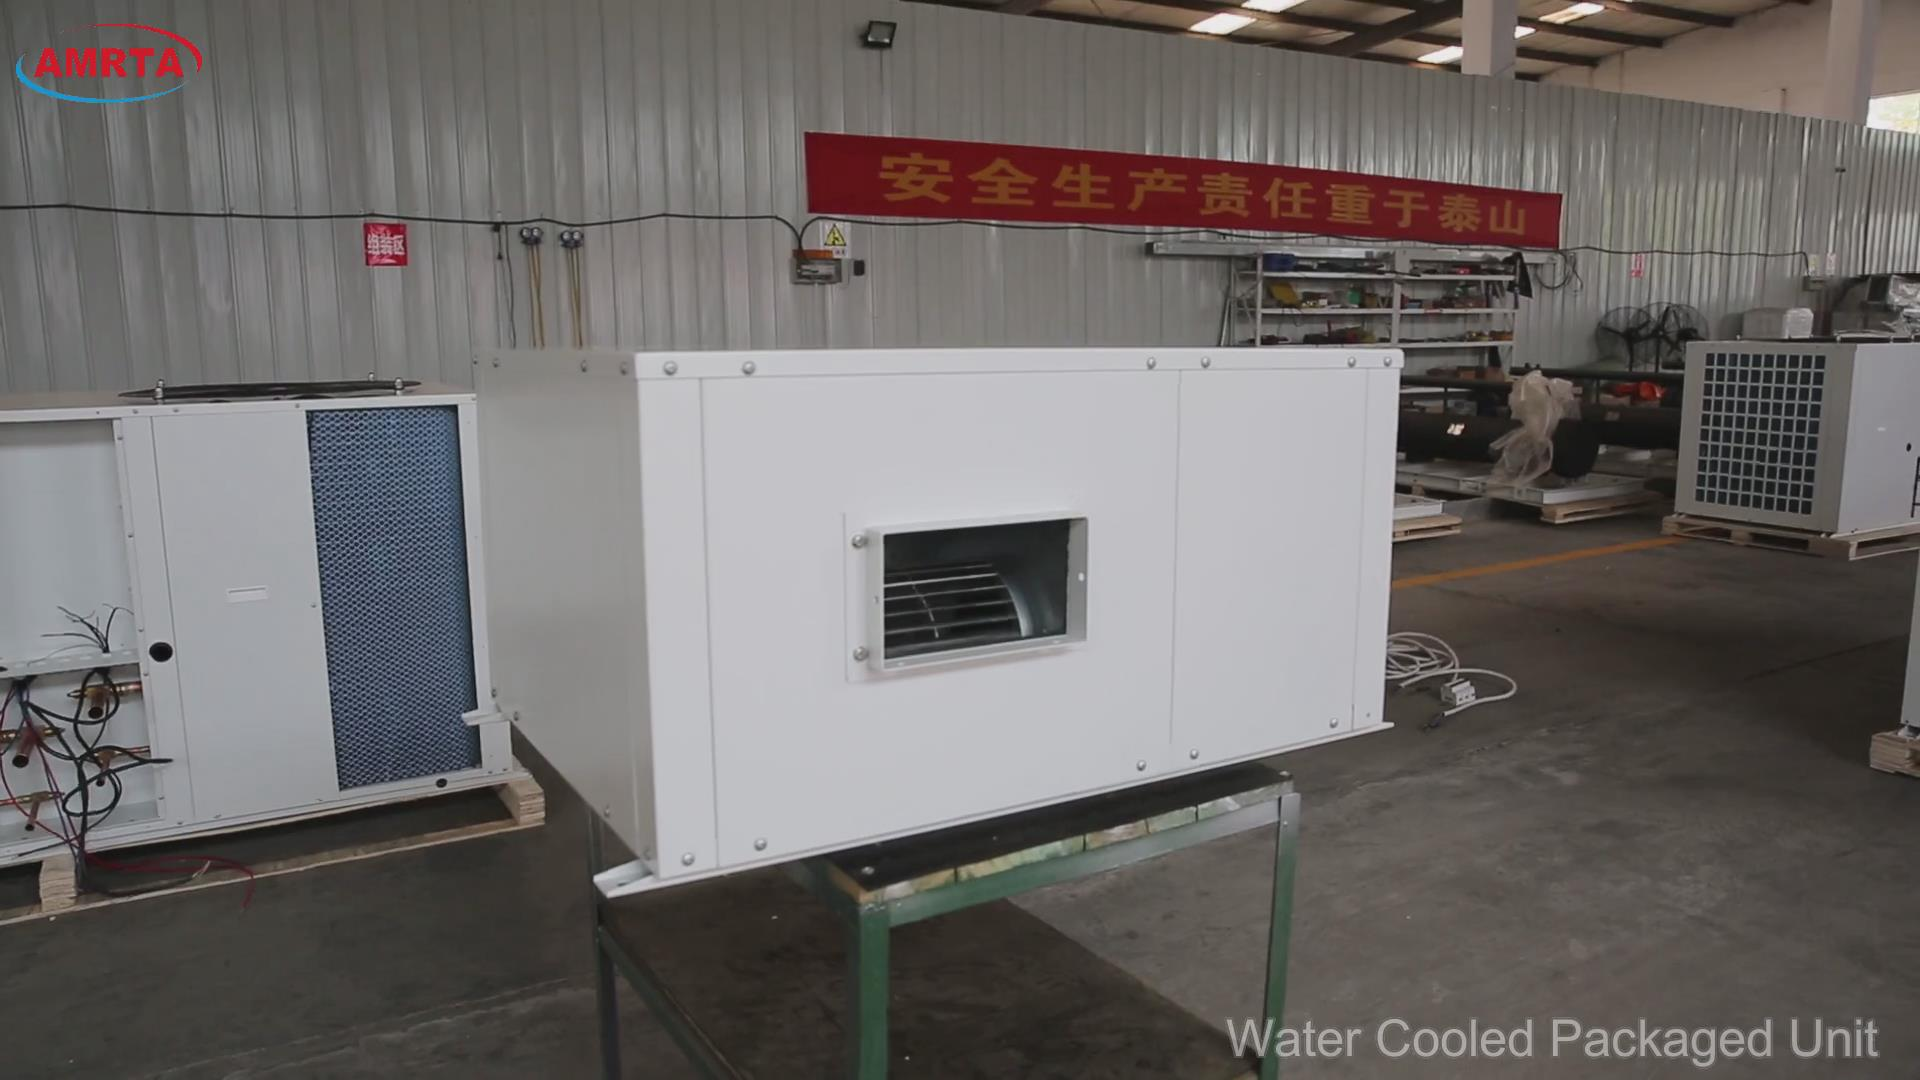 Amrta Water Cooled Packaged Unit